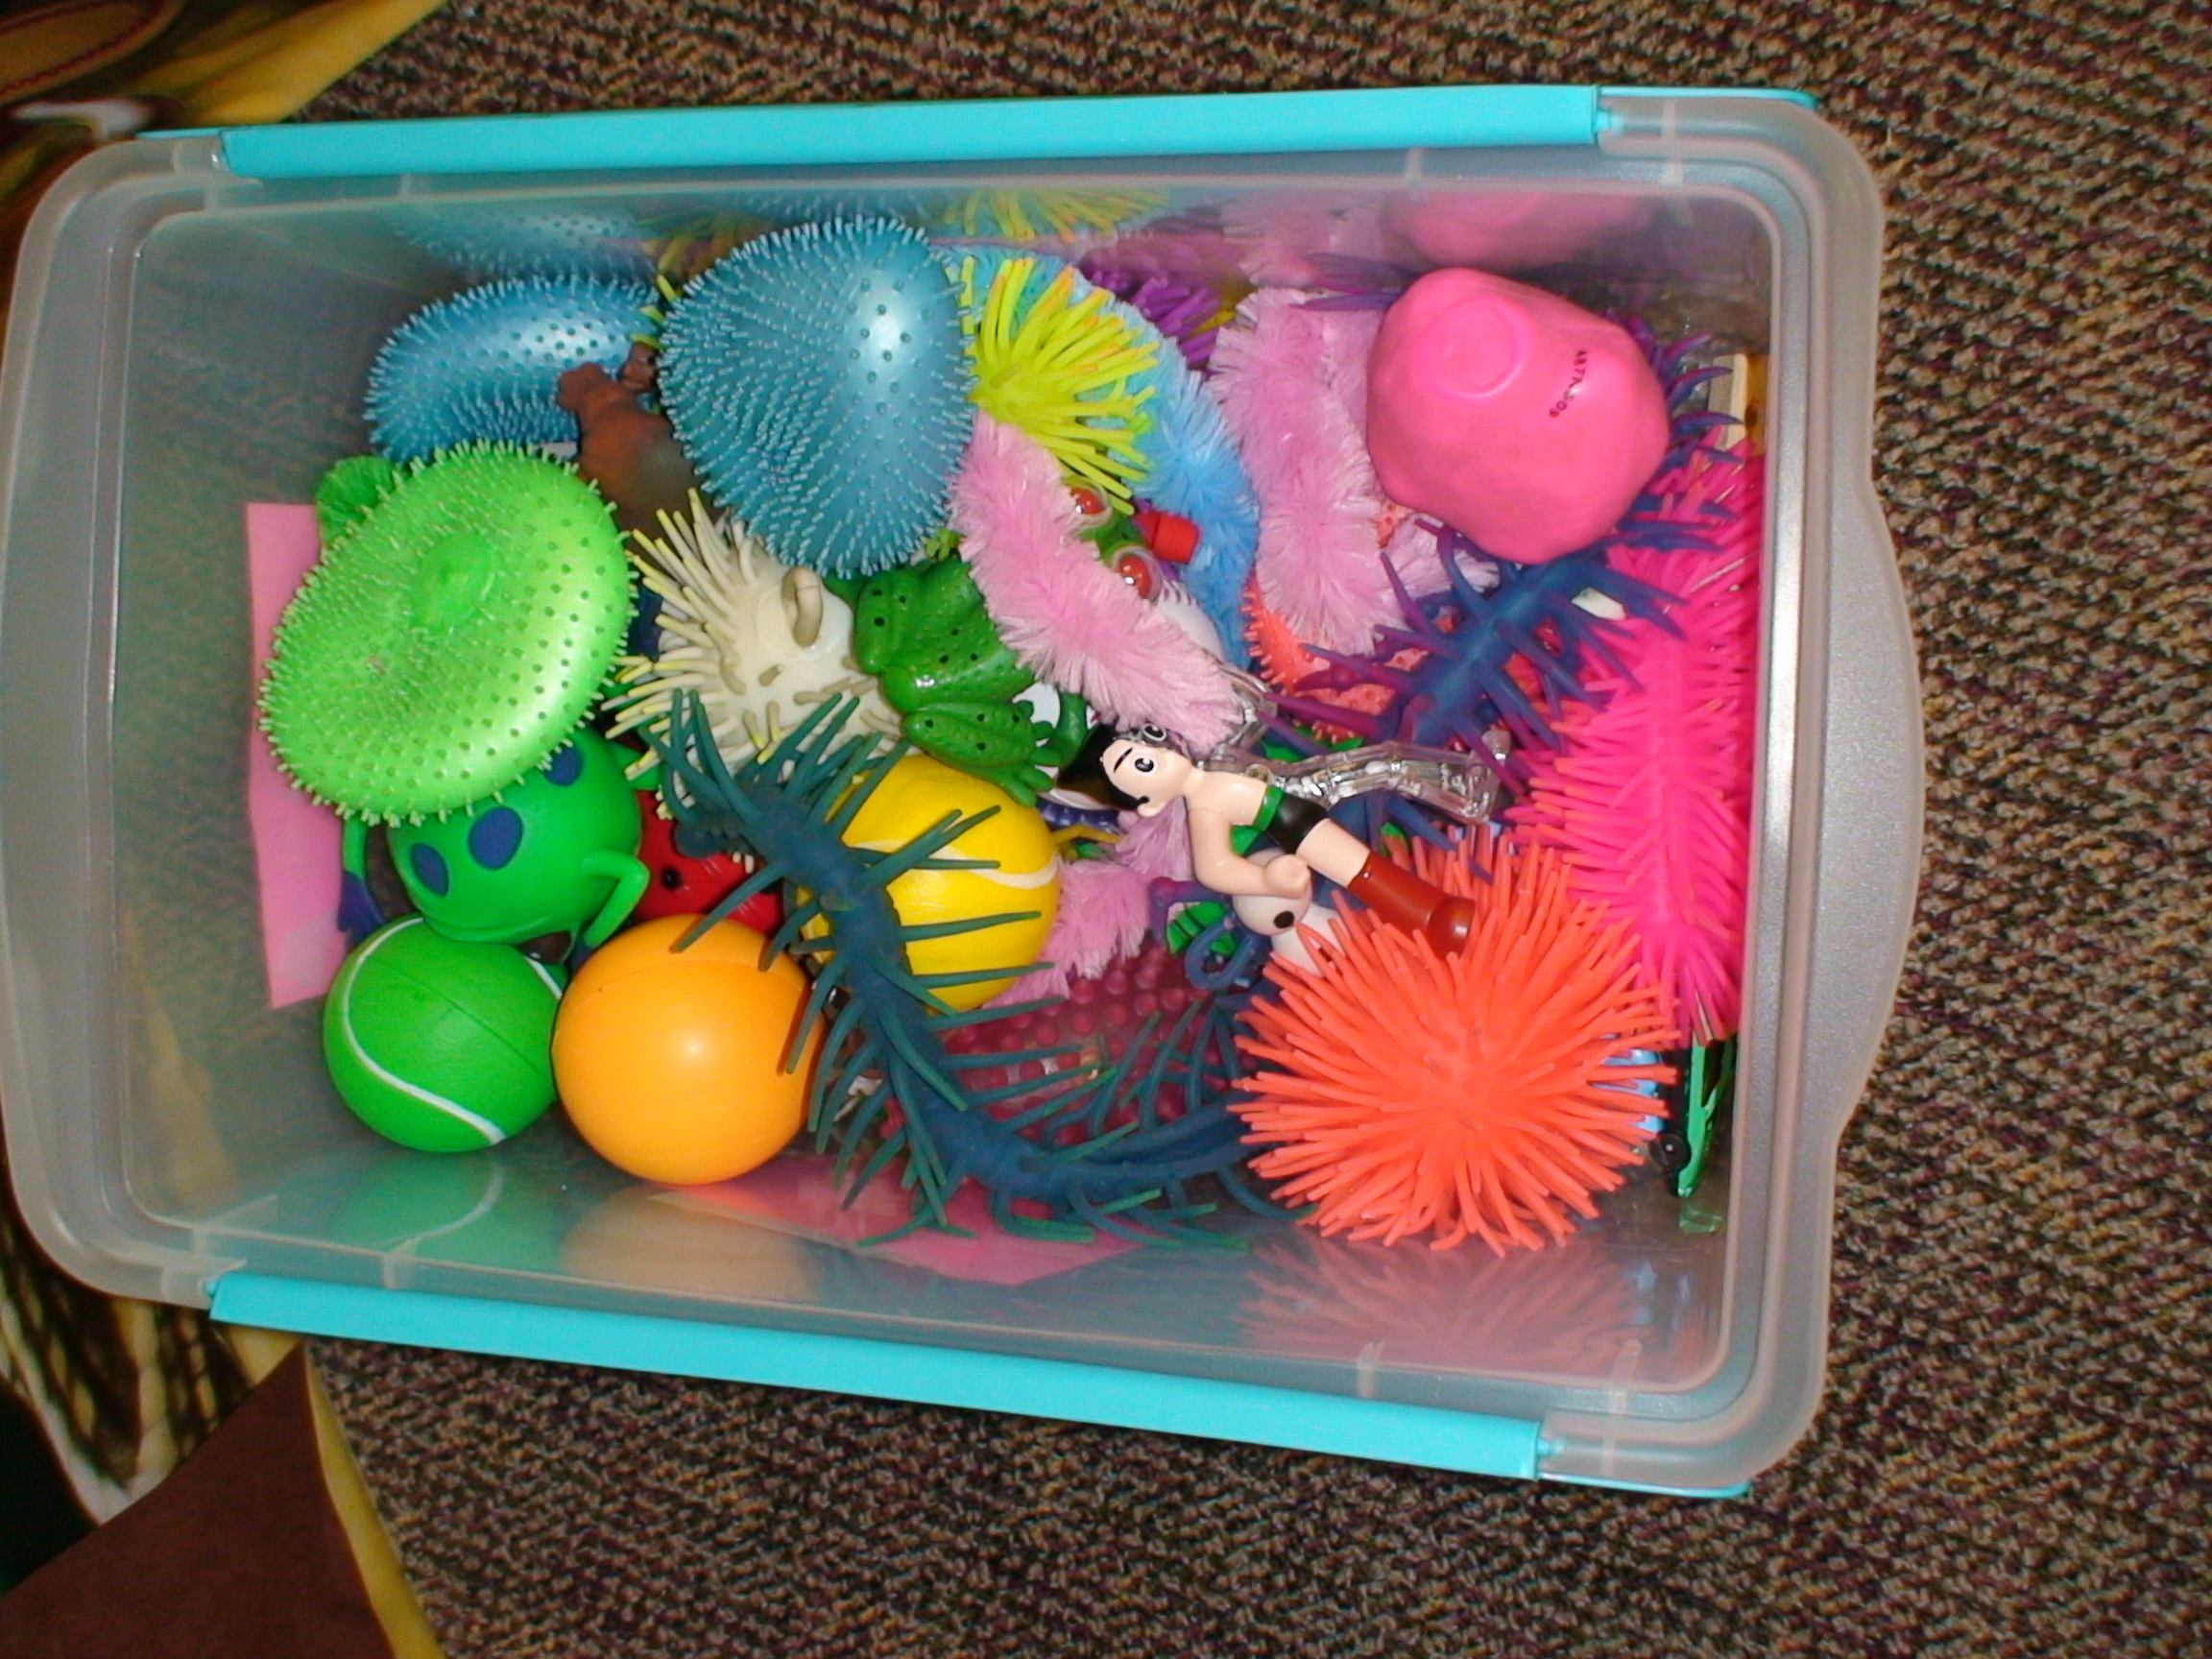 Sensory Toys For Adults With Autism : Providing a sensory toy box and how slinky can help